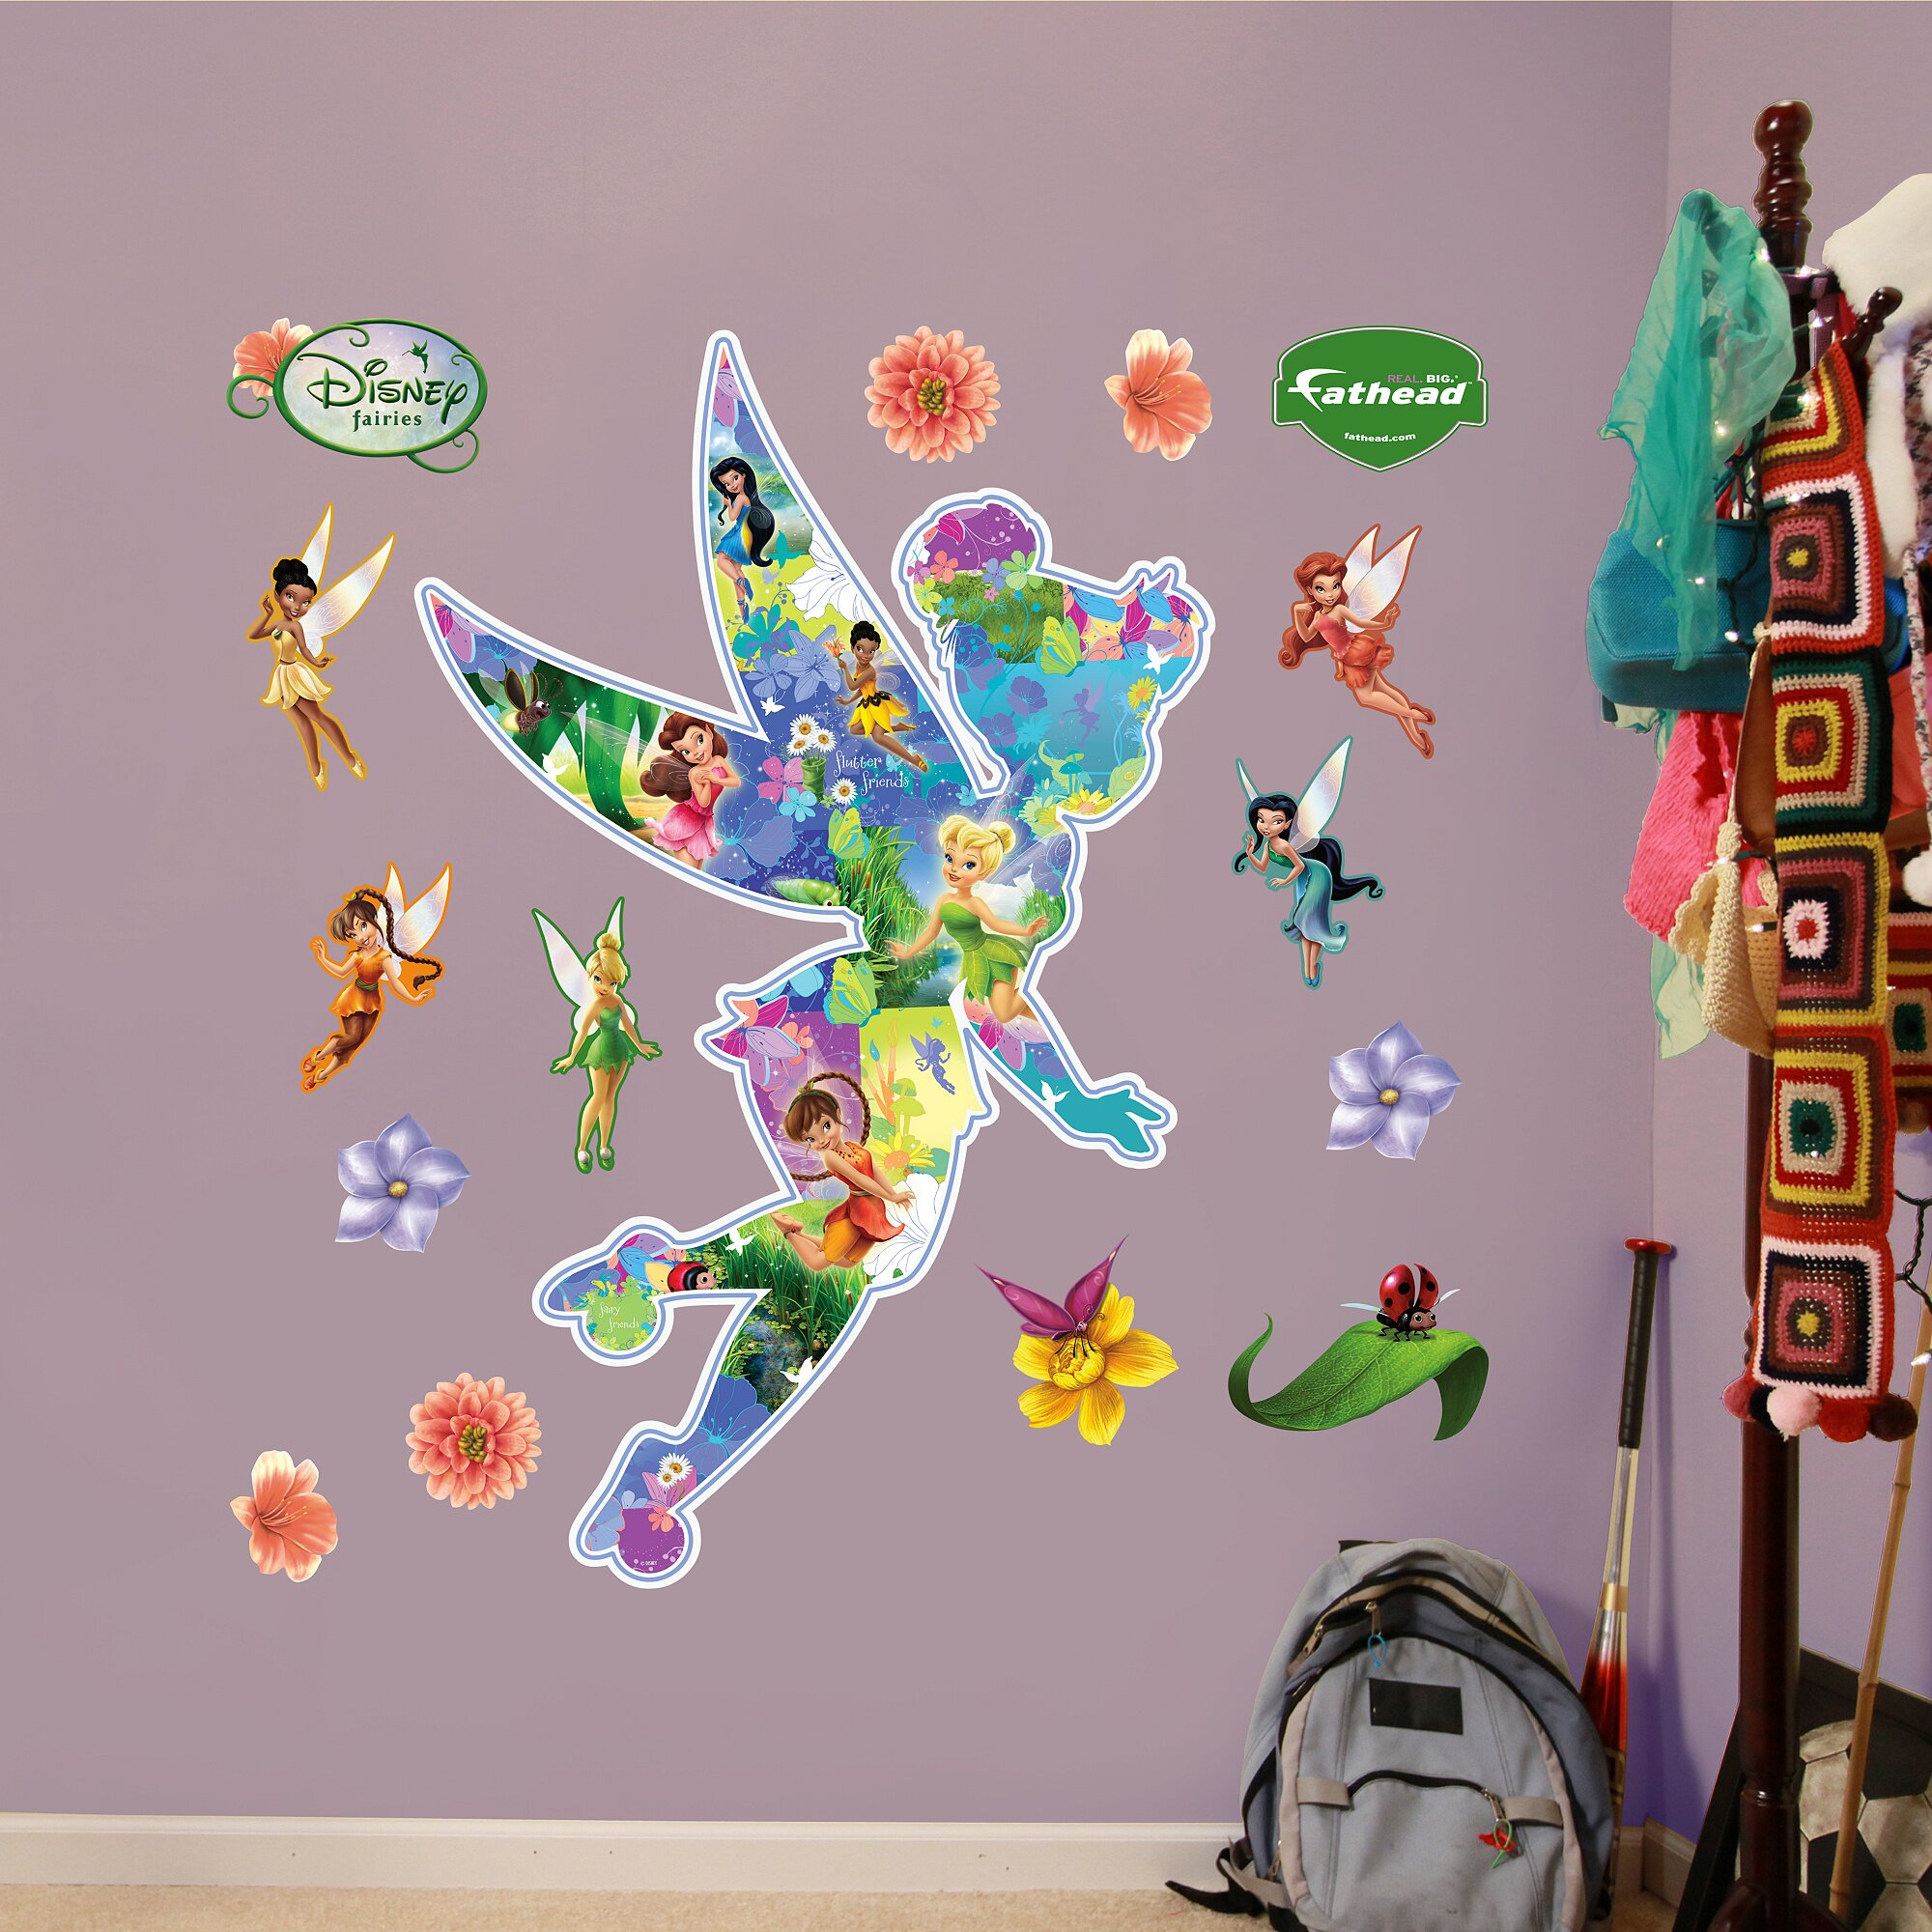 Fathead disney fairies montage wall decal wayfair for Disney fairies wall mural